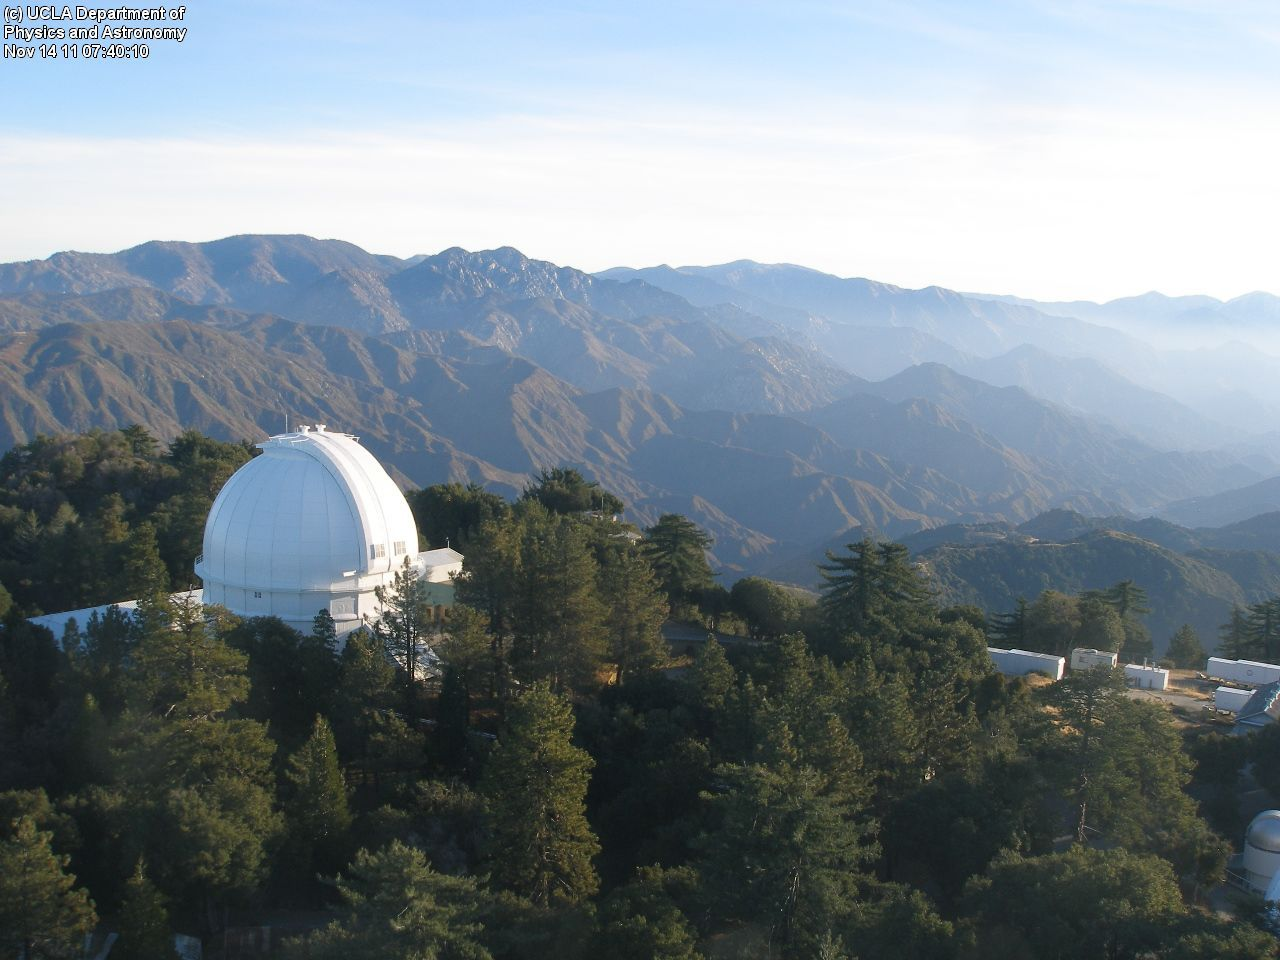 Mt Wilson 150 Foot Solar Tower Current Towercam Image Hike Adventure Places To Go Vacation Spots